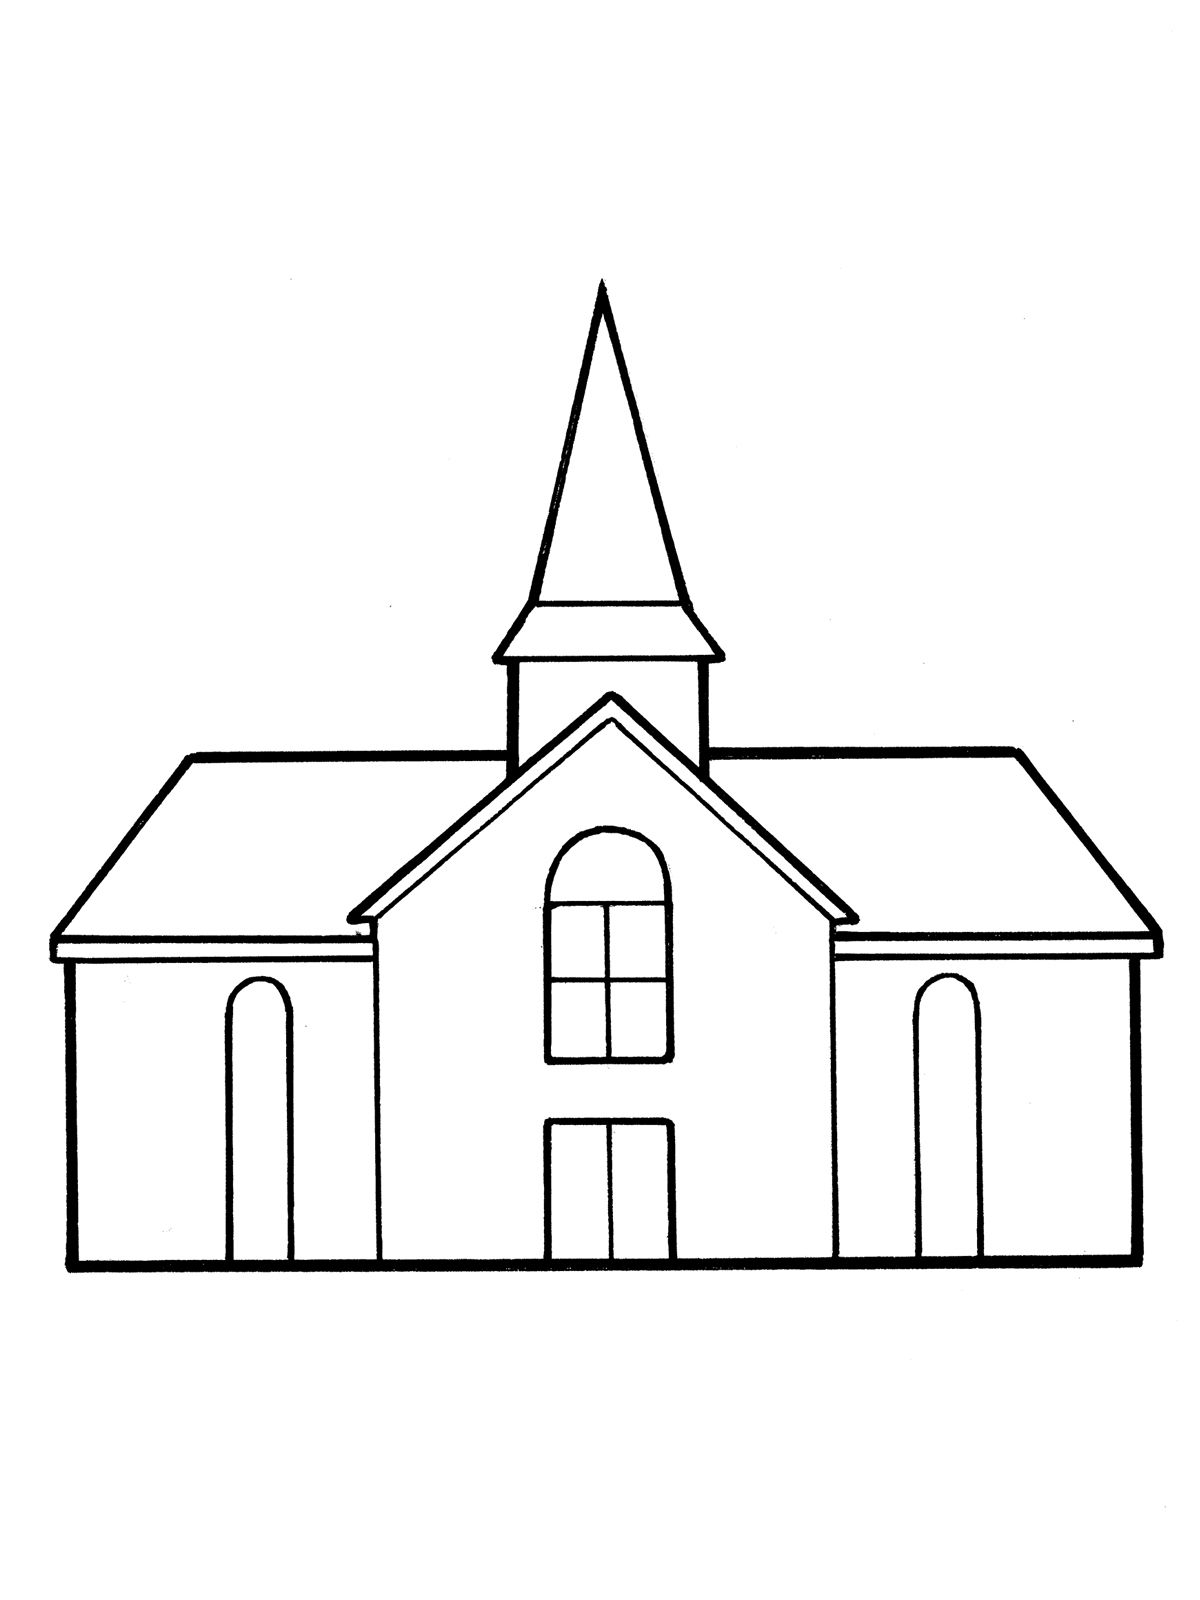 Lds church clipart - Clipart Collection | Know my church is true ...